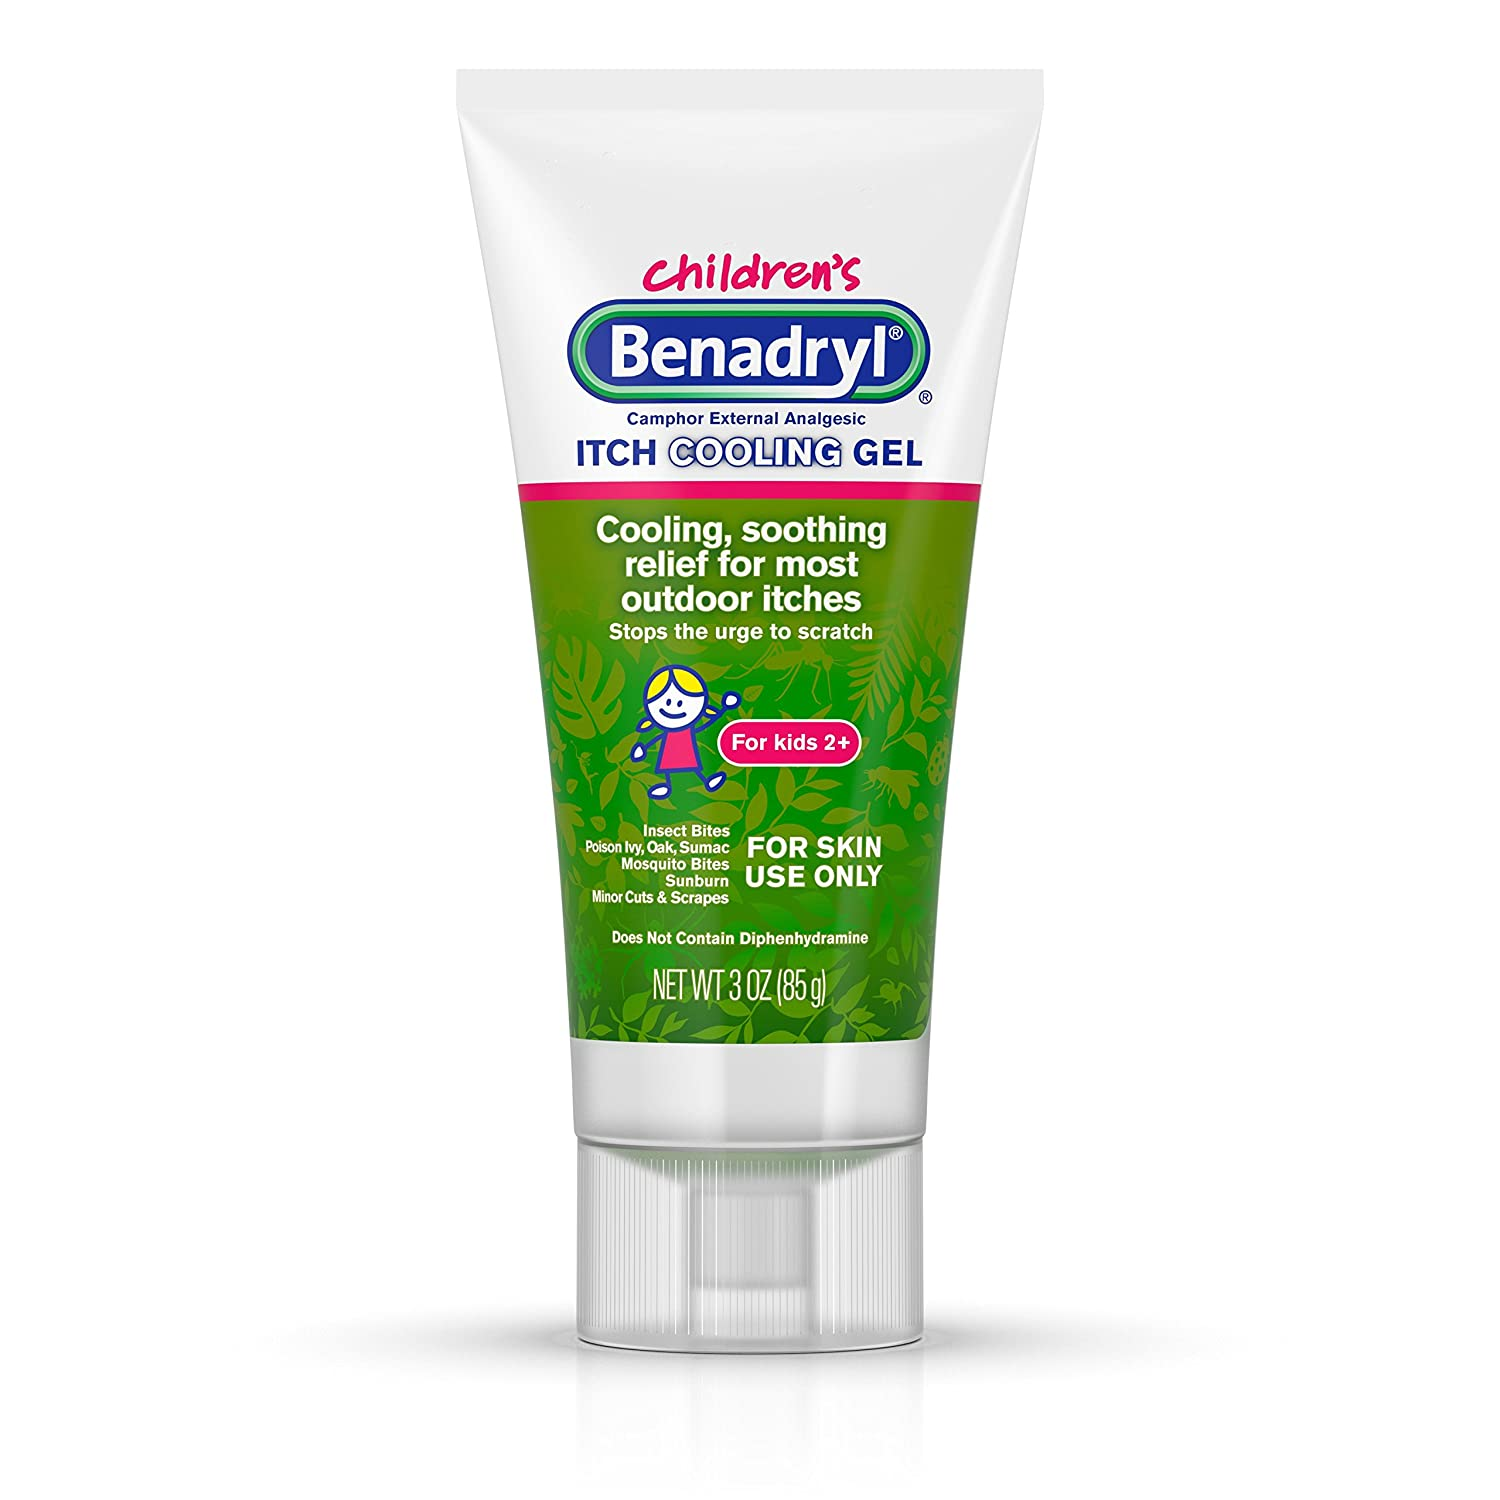 Benadryl Anti-Itch Cooling Gel for Kids, Topical Camphor Gel to Relief Pain & Itching of Most Outdoor Itches, Travel Size, 3 oz (Pack of 3)